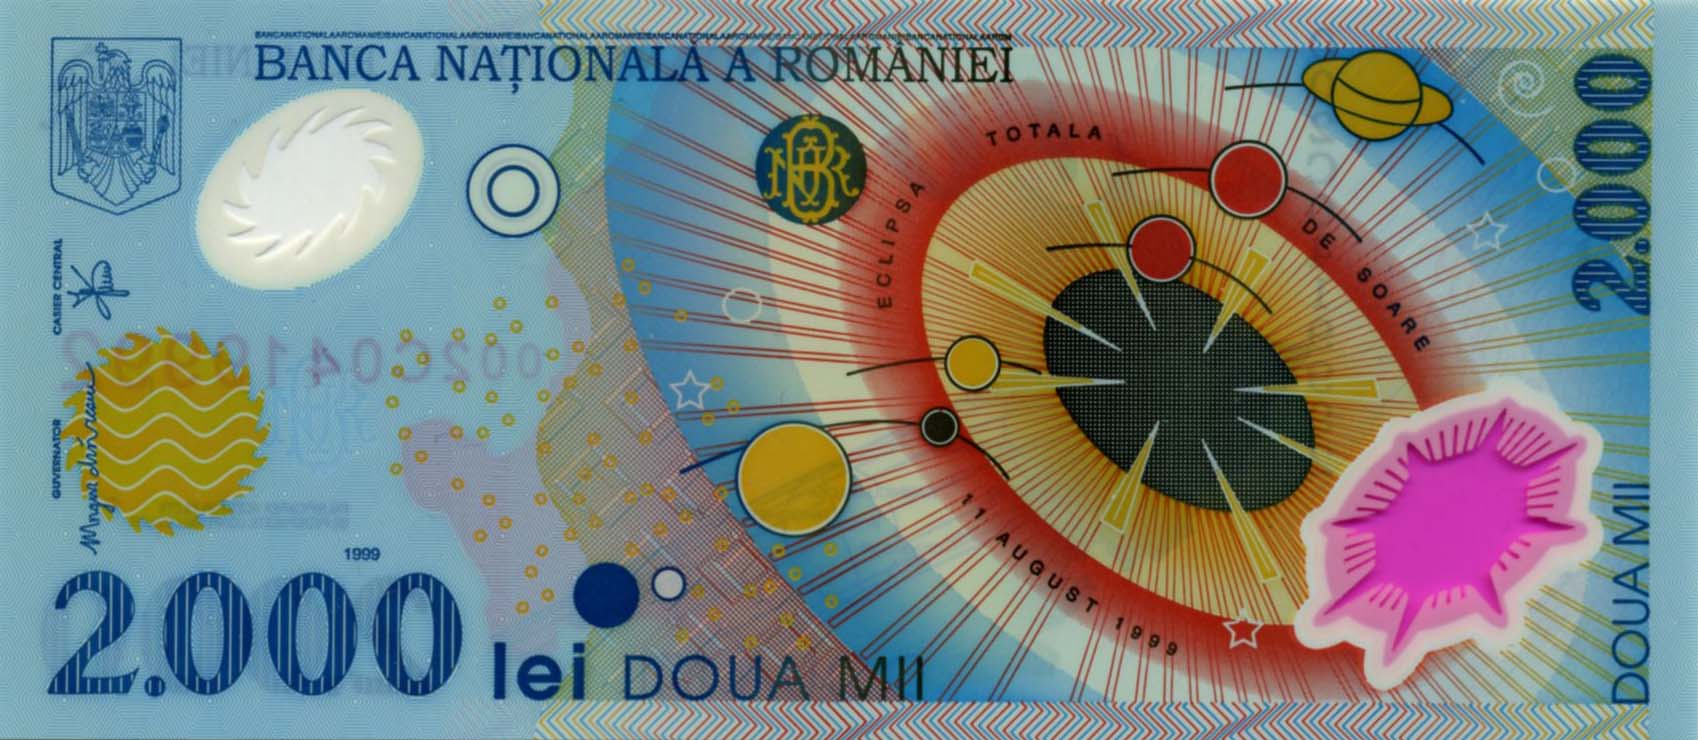 http://www.banknoteworld.it/images/ROMANIA/BR/ROMANIA-111F-1999%20copy.jpg